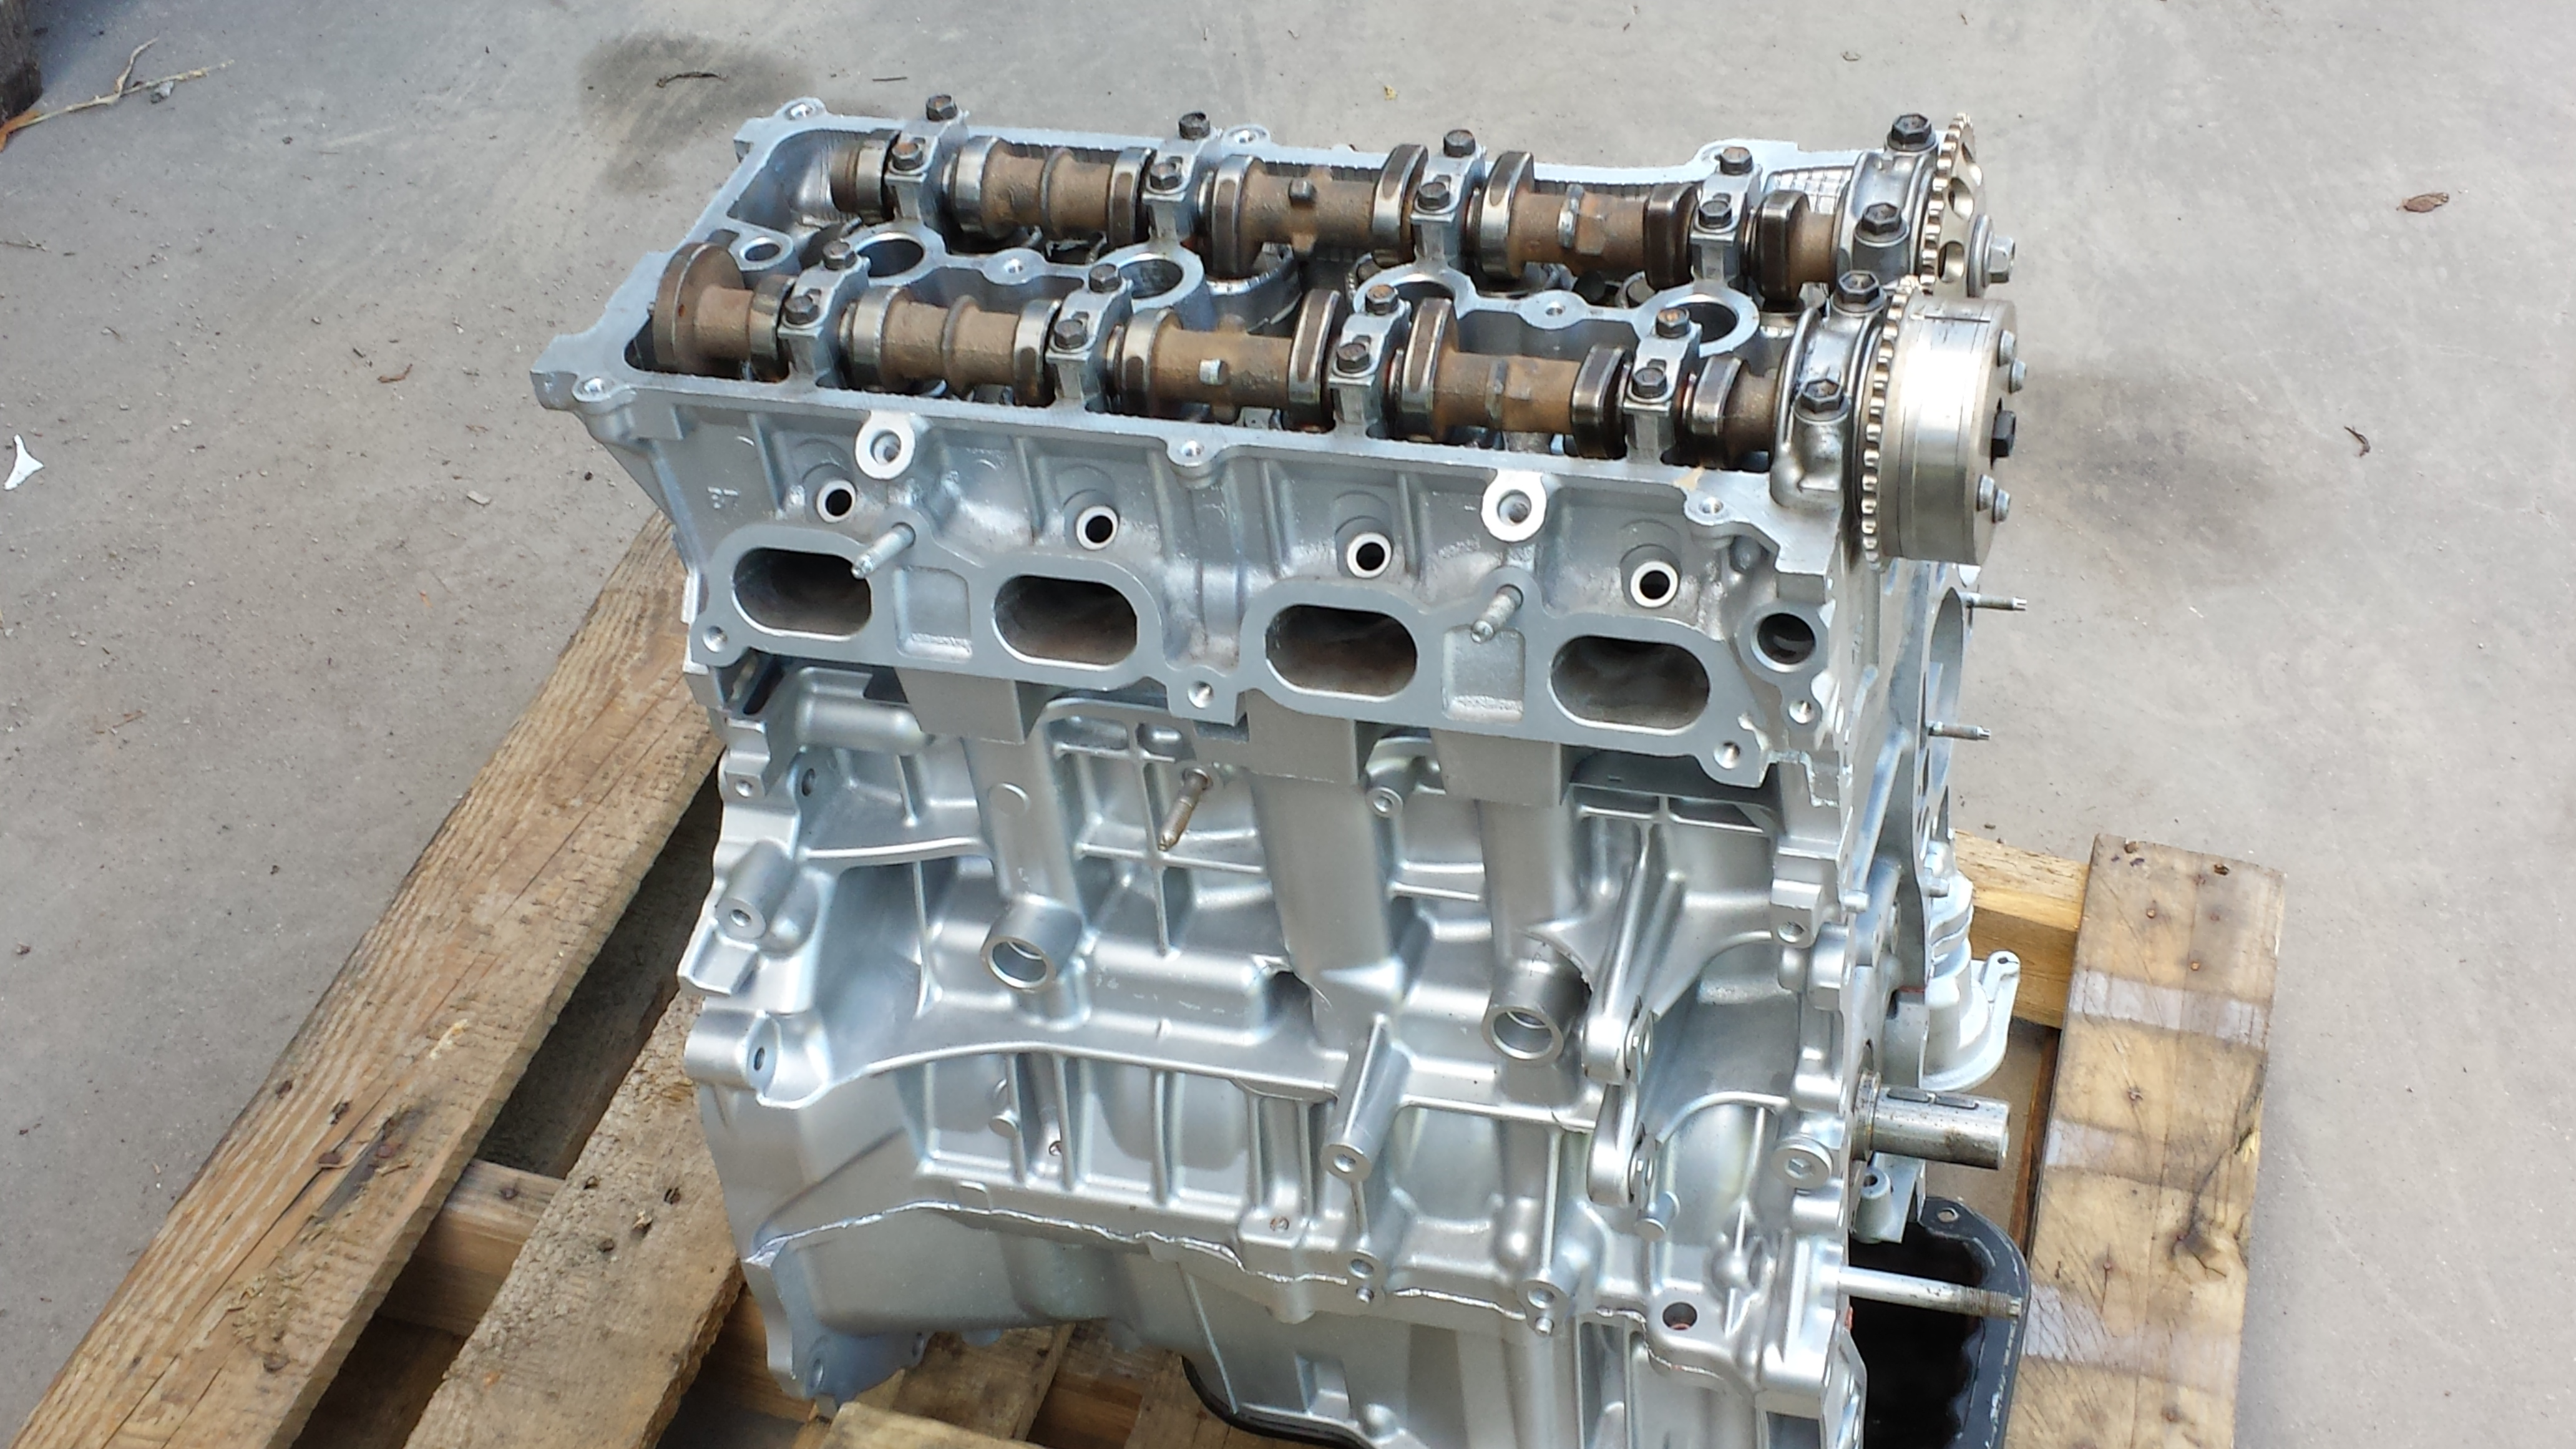 Engine World has Sold Over 2000 Units of Japanese Engines